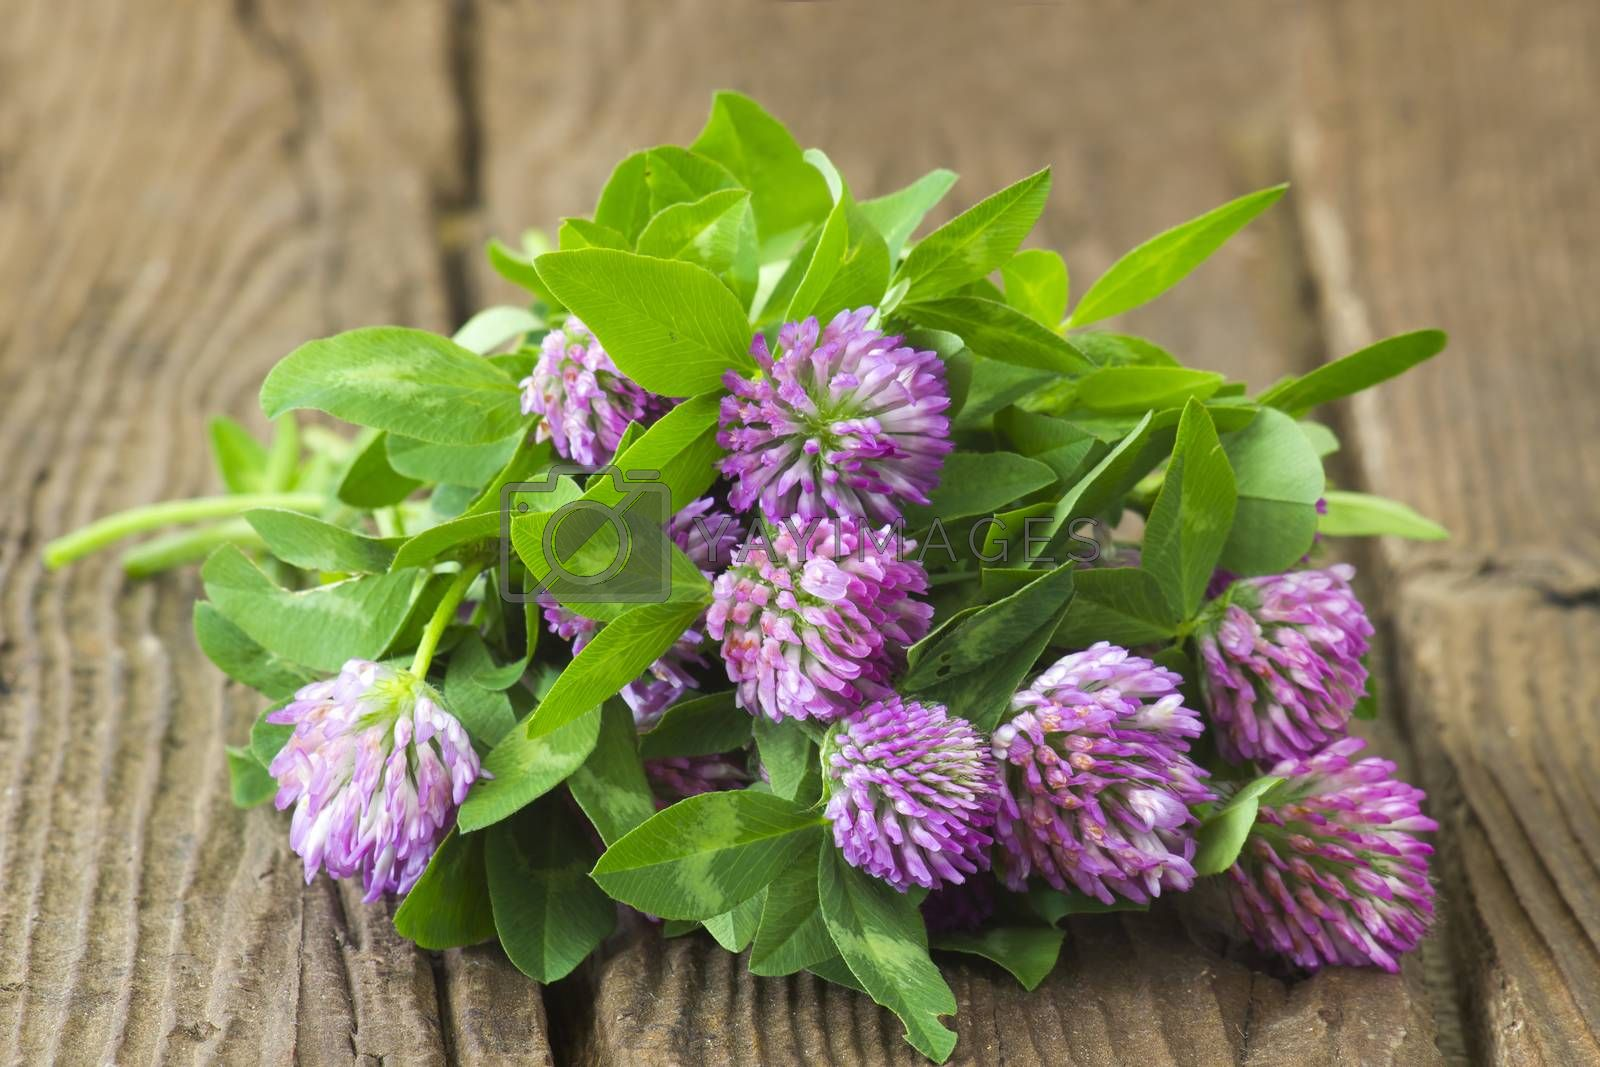 Bunch of clover on wooden background